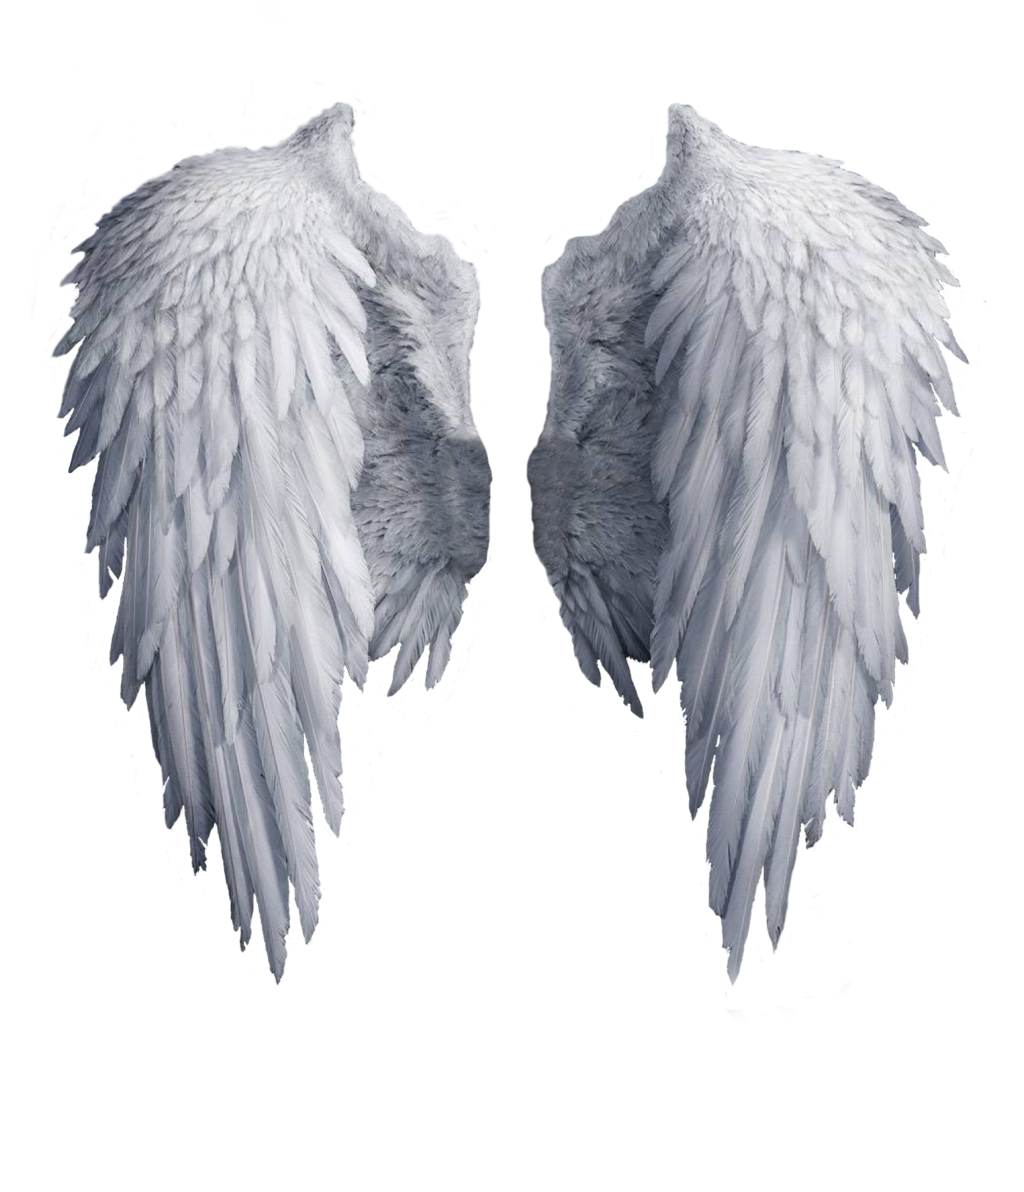 1024x1192 Wings Png Images Free Download, Angel Wings Png